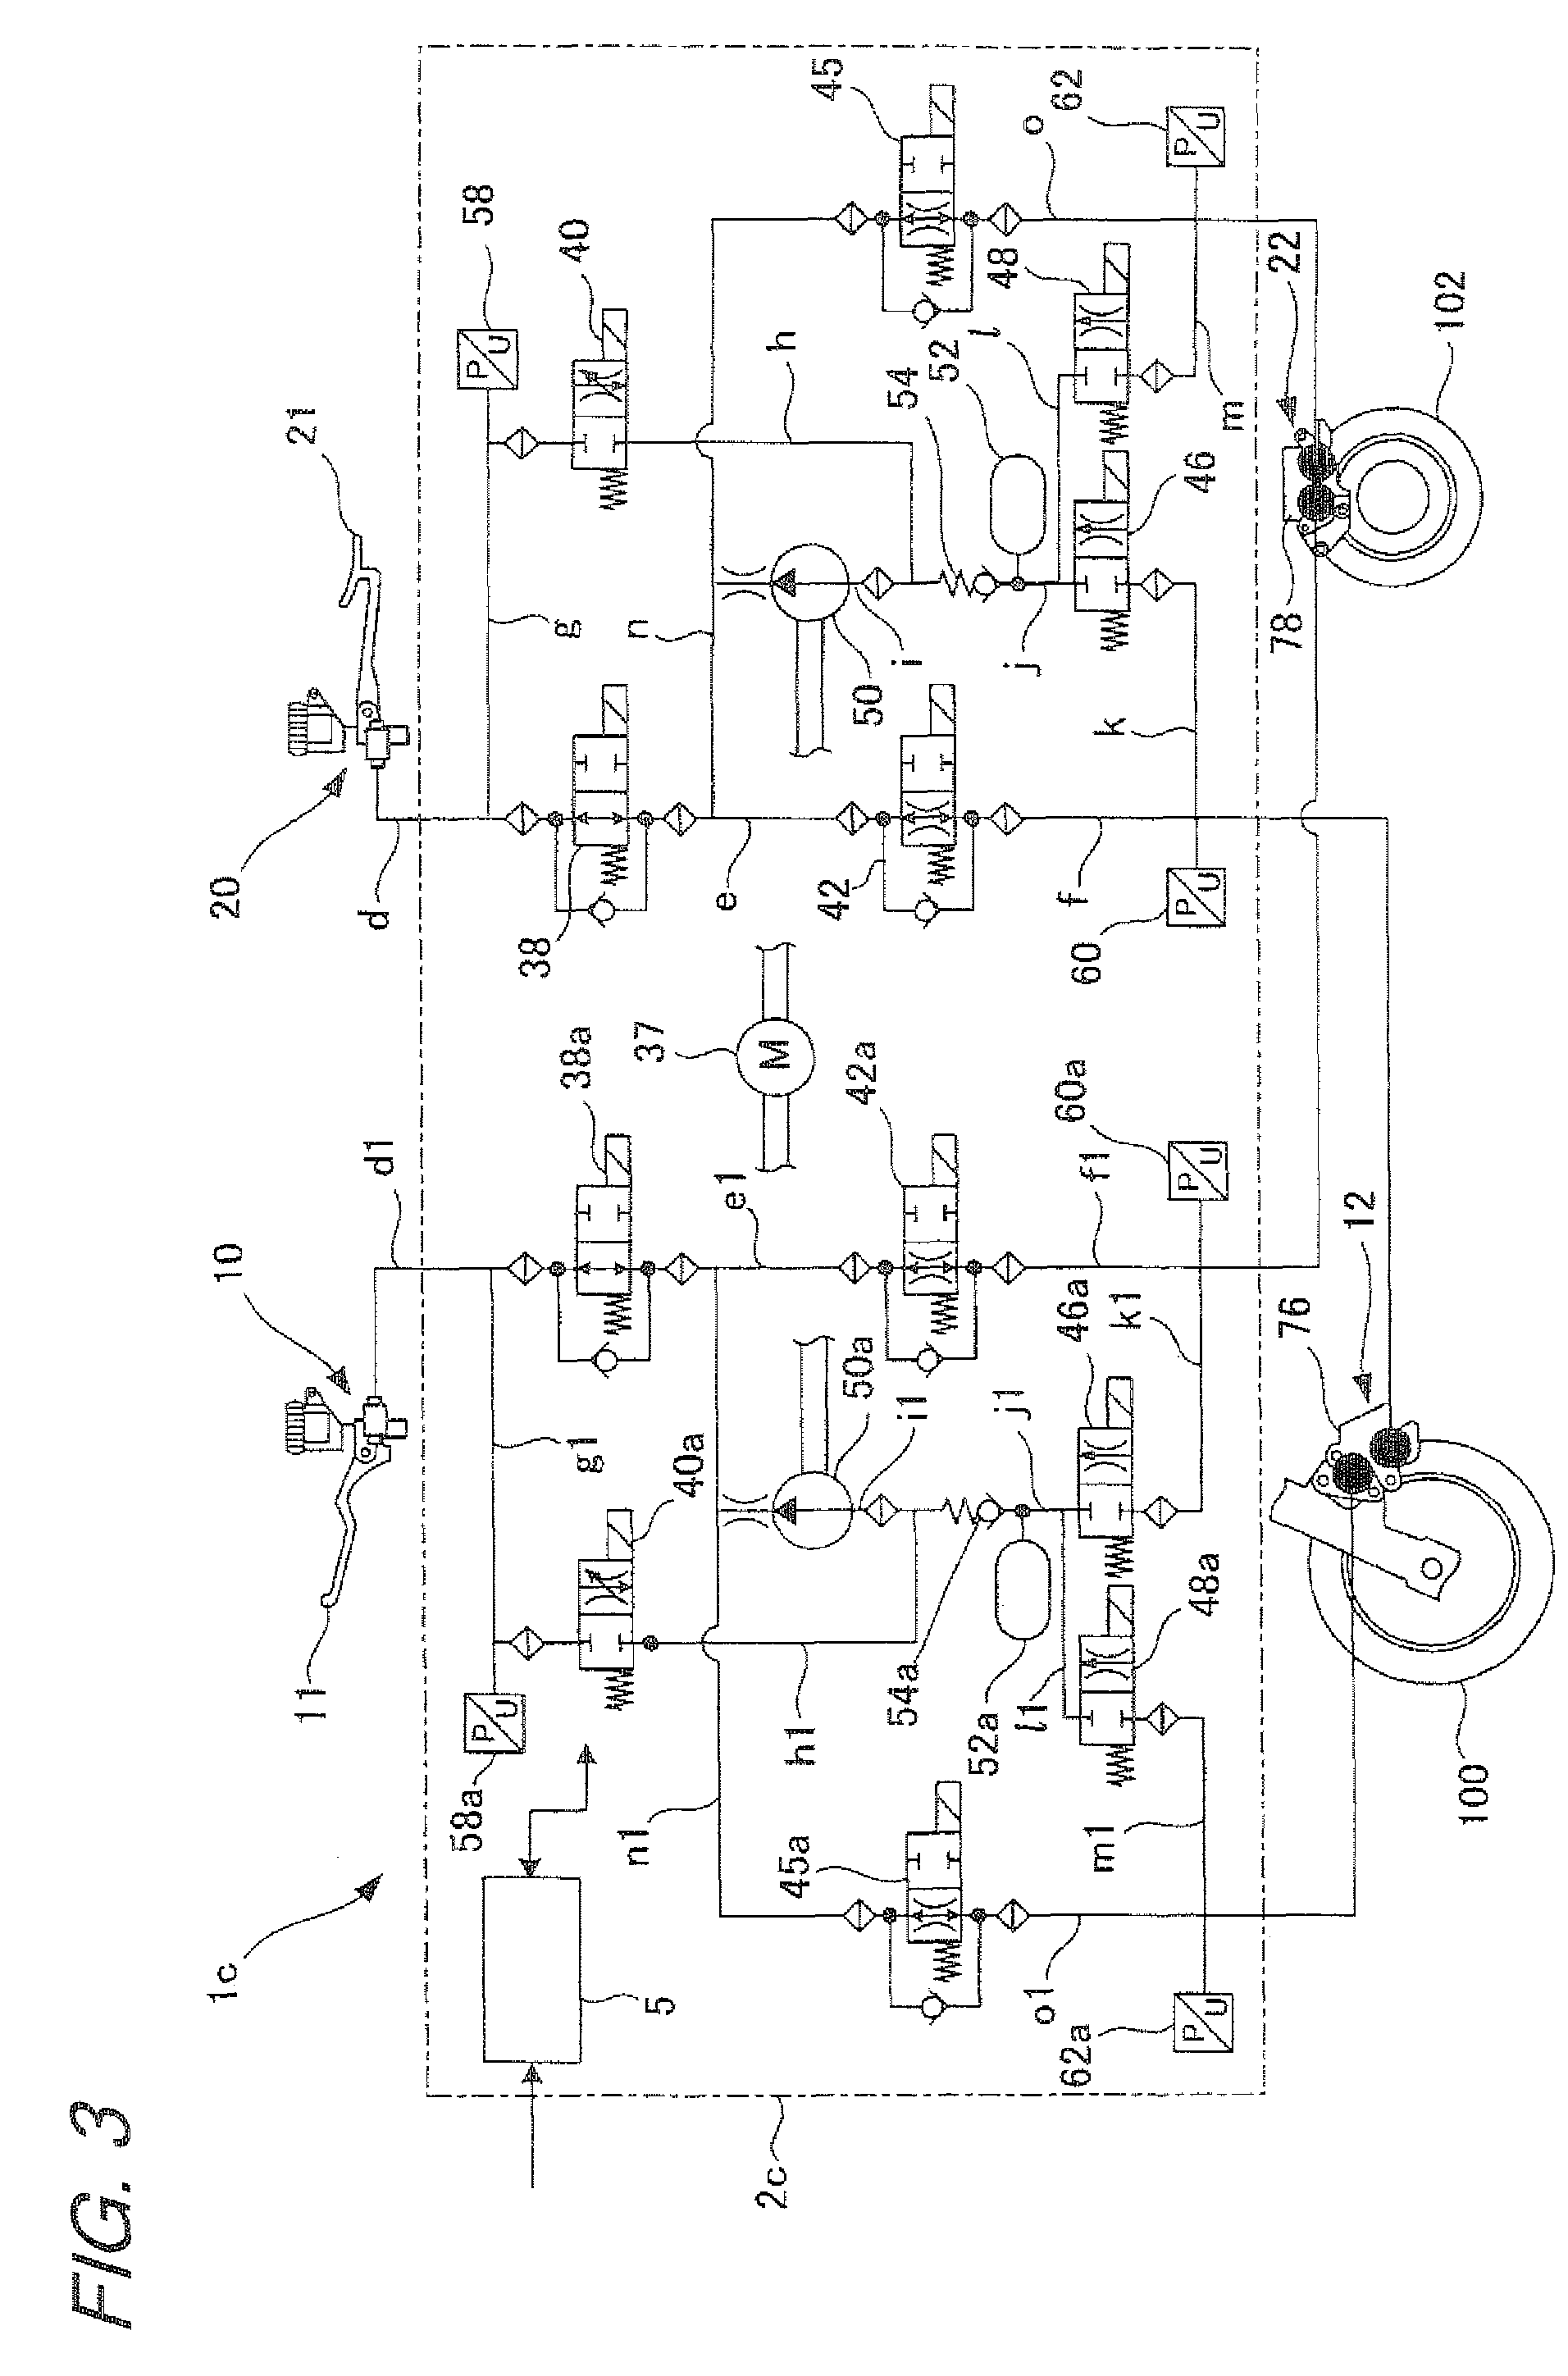 chevy sonic stereo wiring diagram